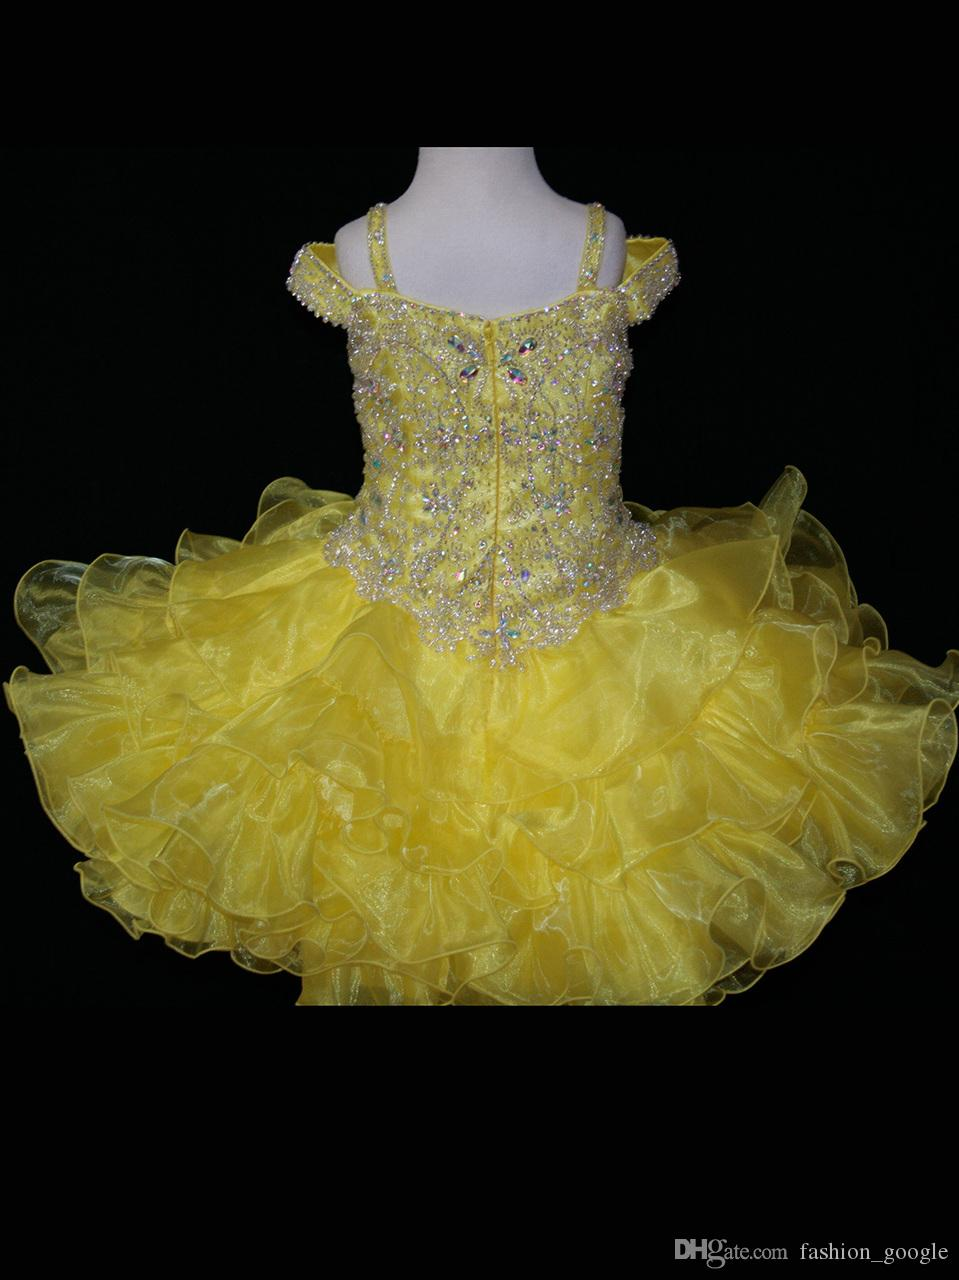 Little Pageant Cupcake Abiti ragazze 2017 Princess Toddler Pageant Dress with Ruffles Organza Skirt Bling Bling Beading Giallo